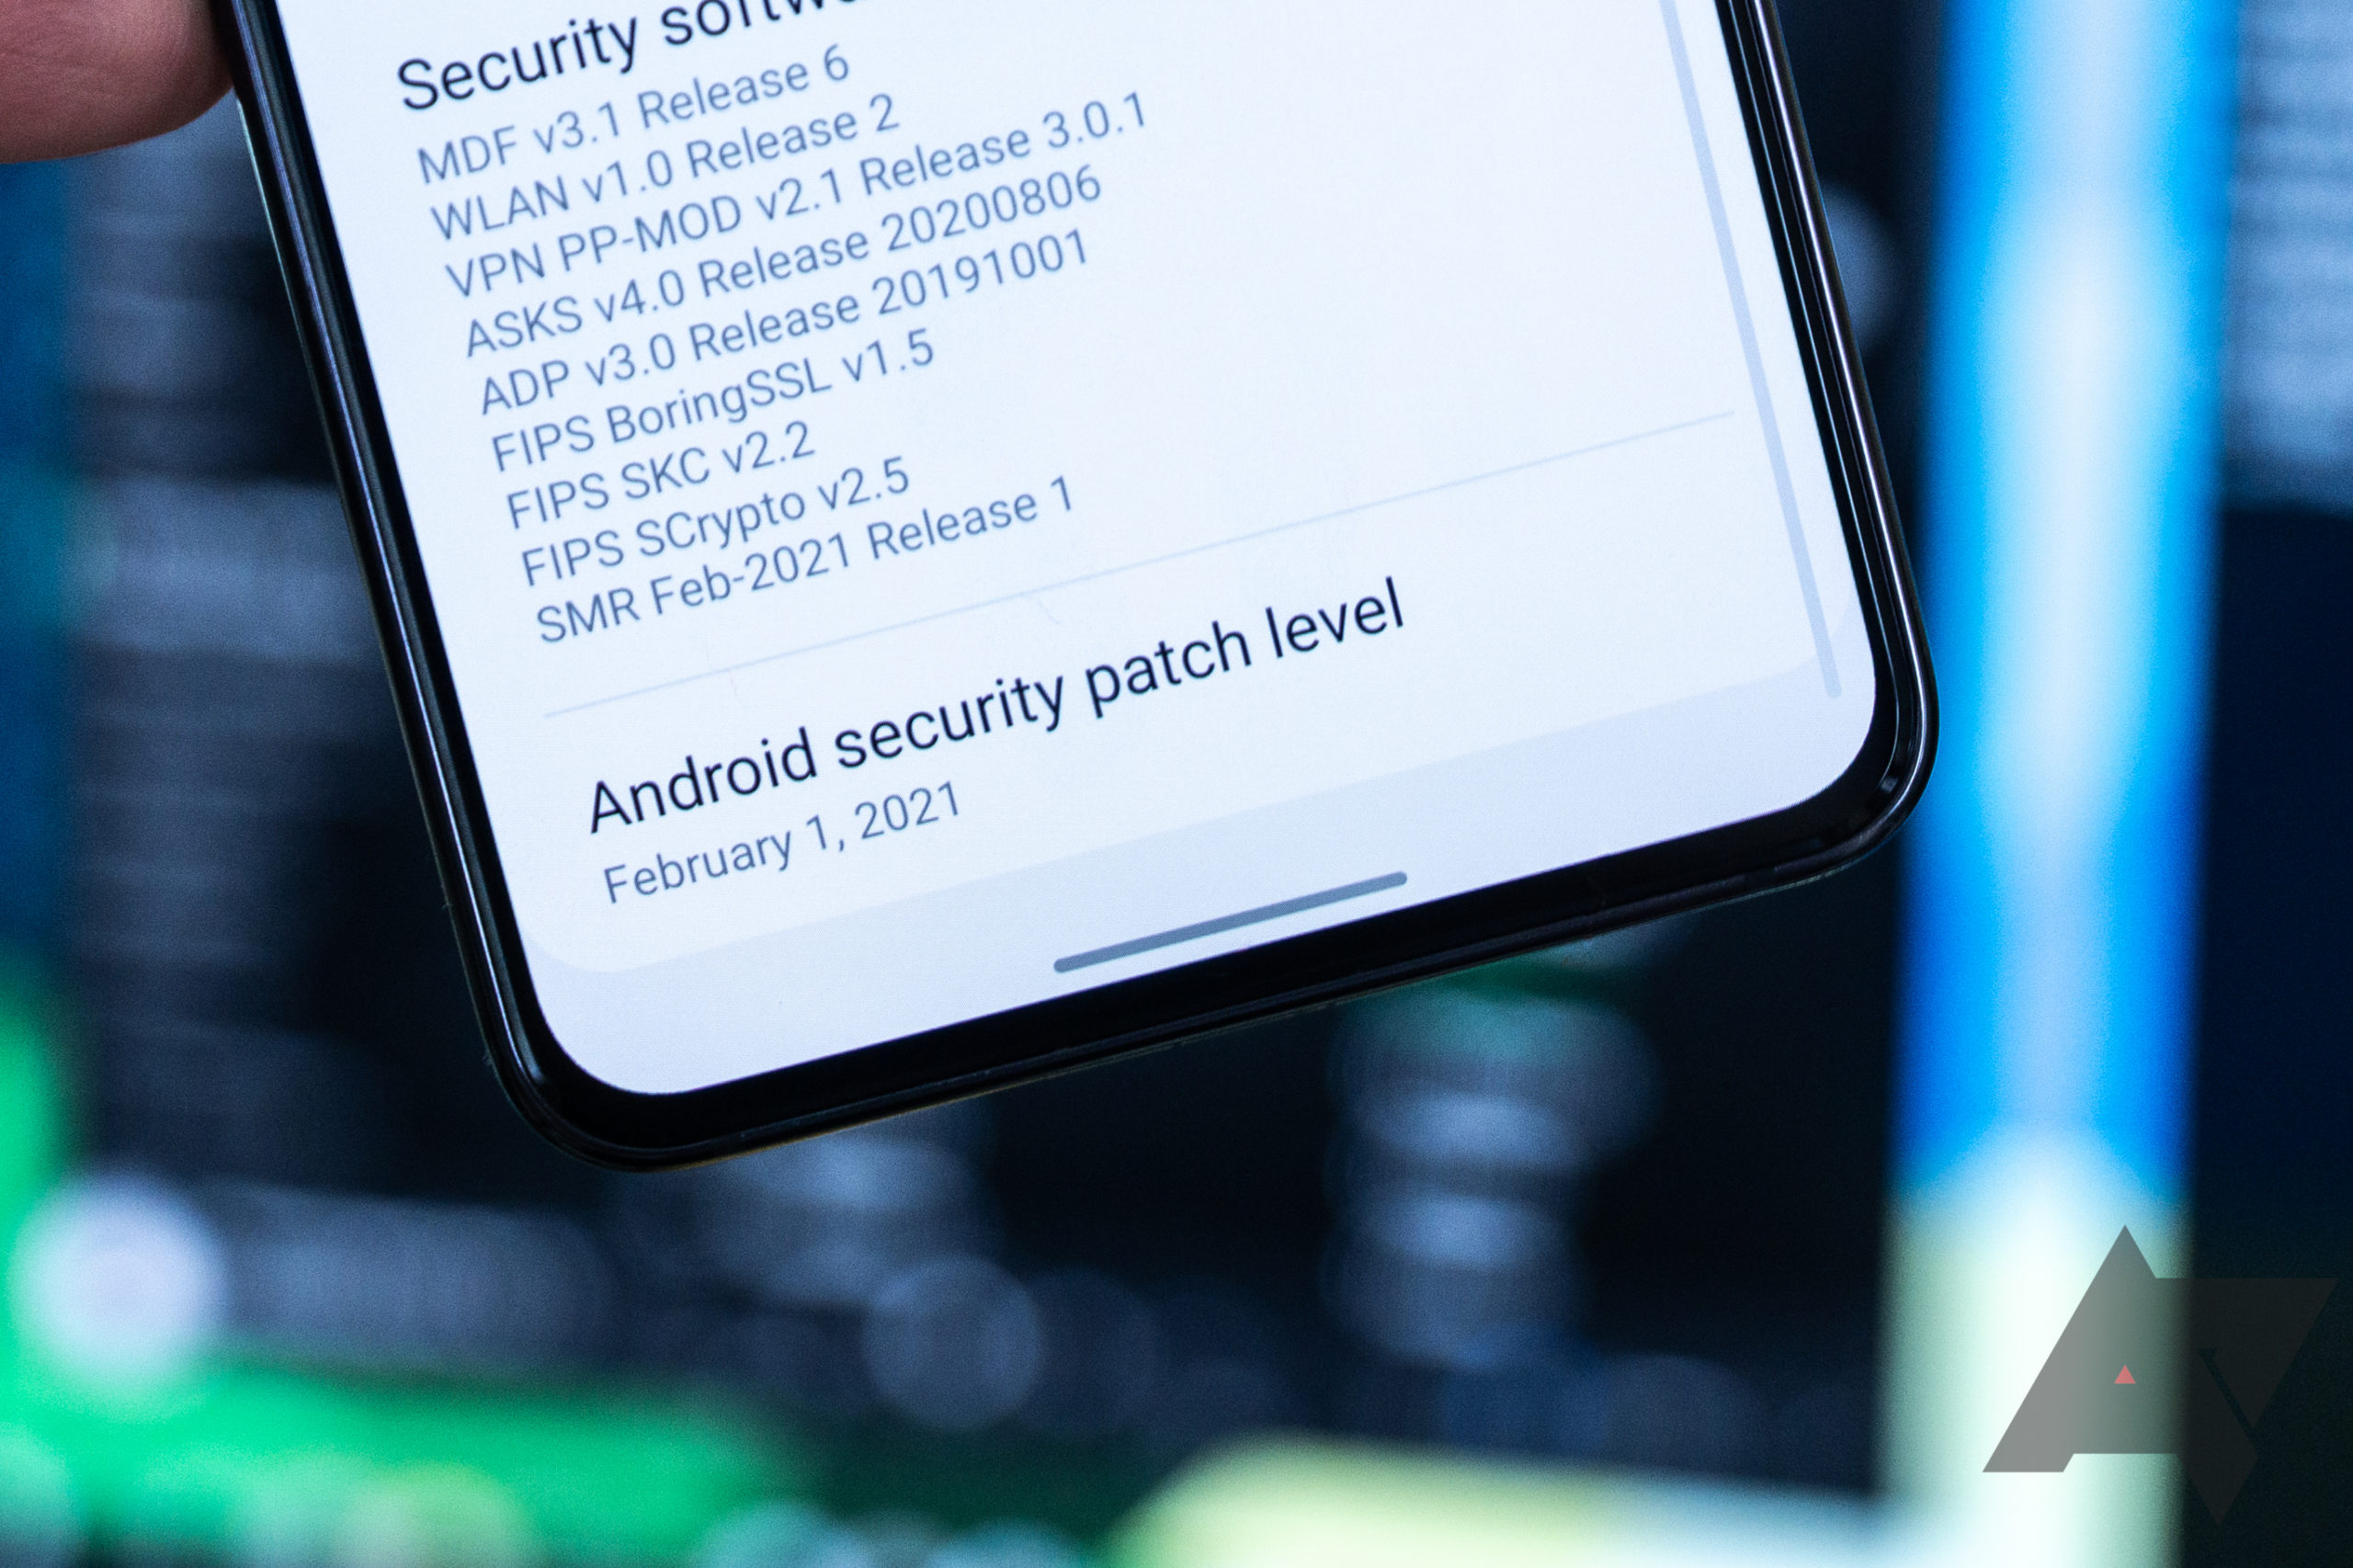 Weekend poll: How old is the security patch on your phone? - Android Police